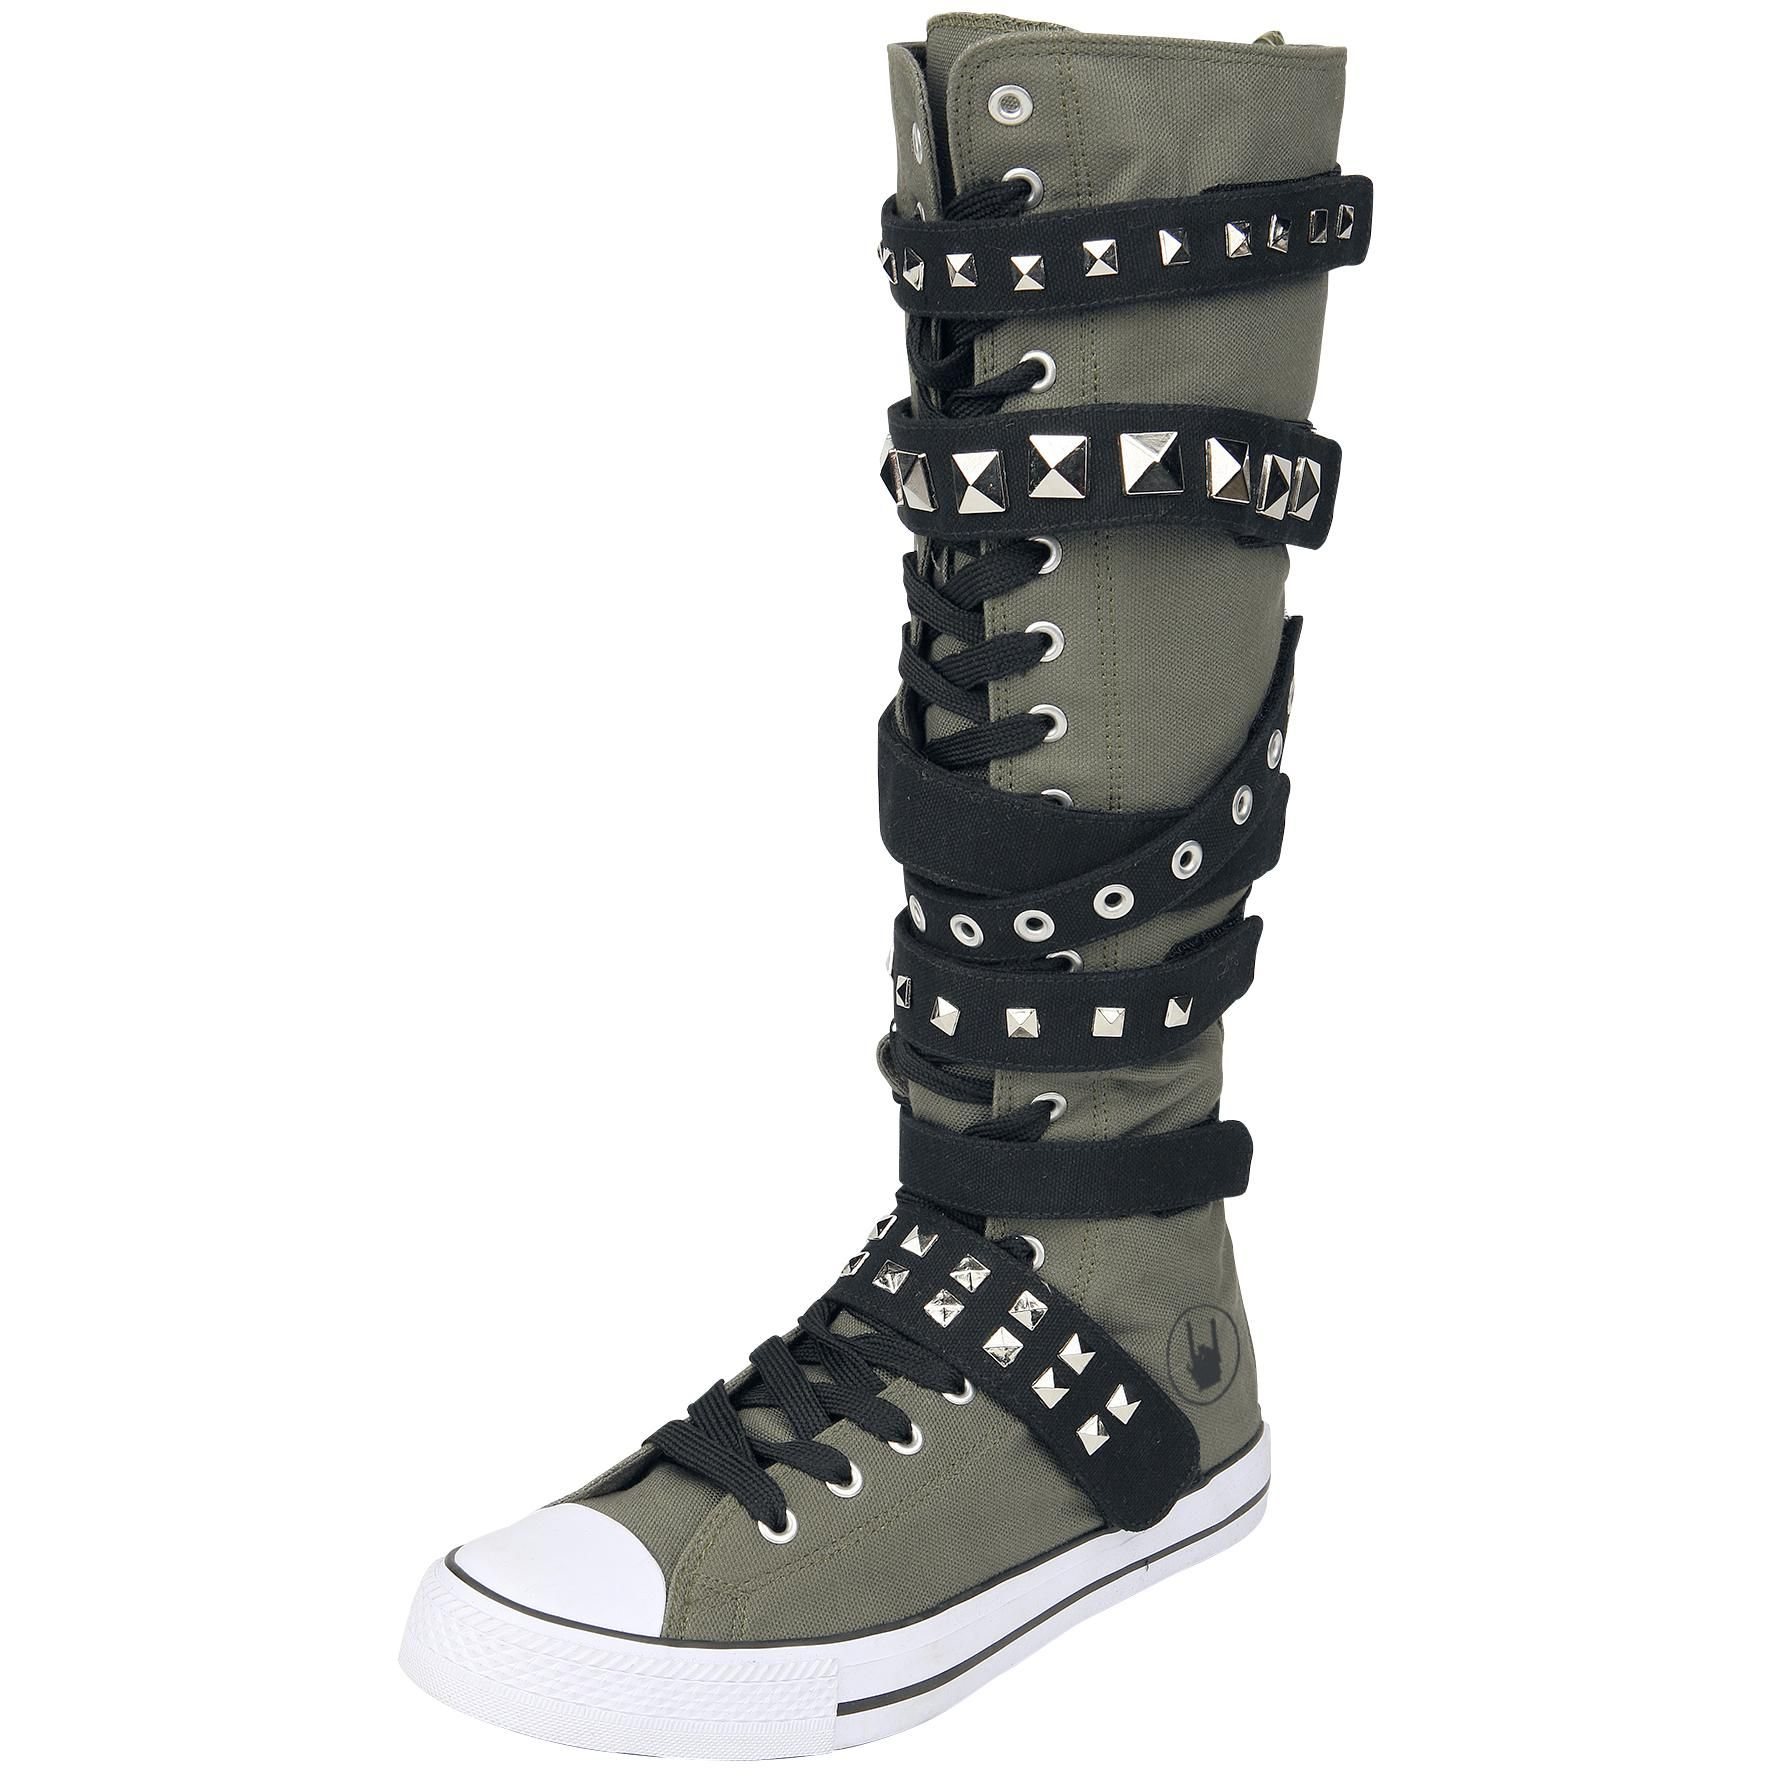 premium selection 1d9e6 48a90 Hurricane - Sneakers by Black Premium by EMP - Article ...